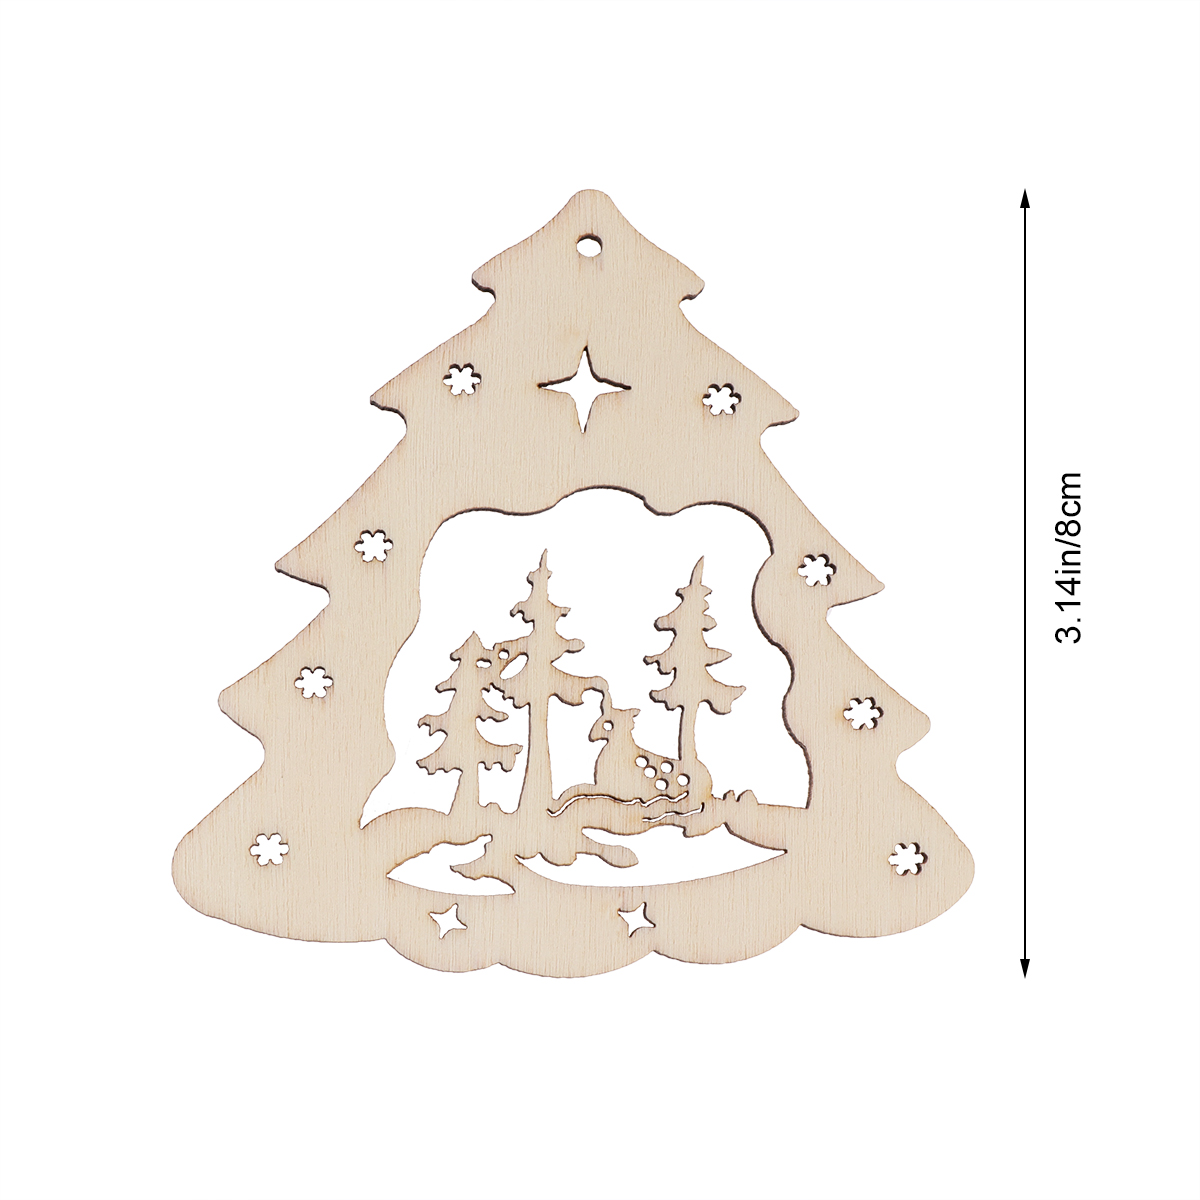 Us 1 83 29 Off 10pcs Christmas Tree Wooden Discs Diy Craft Decor Wood Cutout Slices Ornaments Christmas Tree Pendants Tags In Wood Diy Crafts From